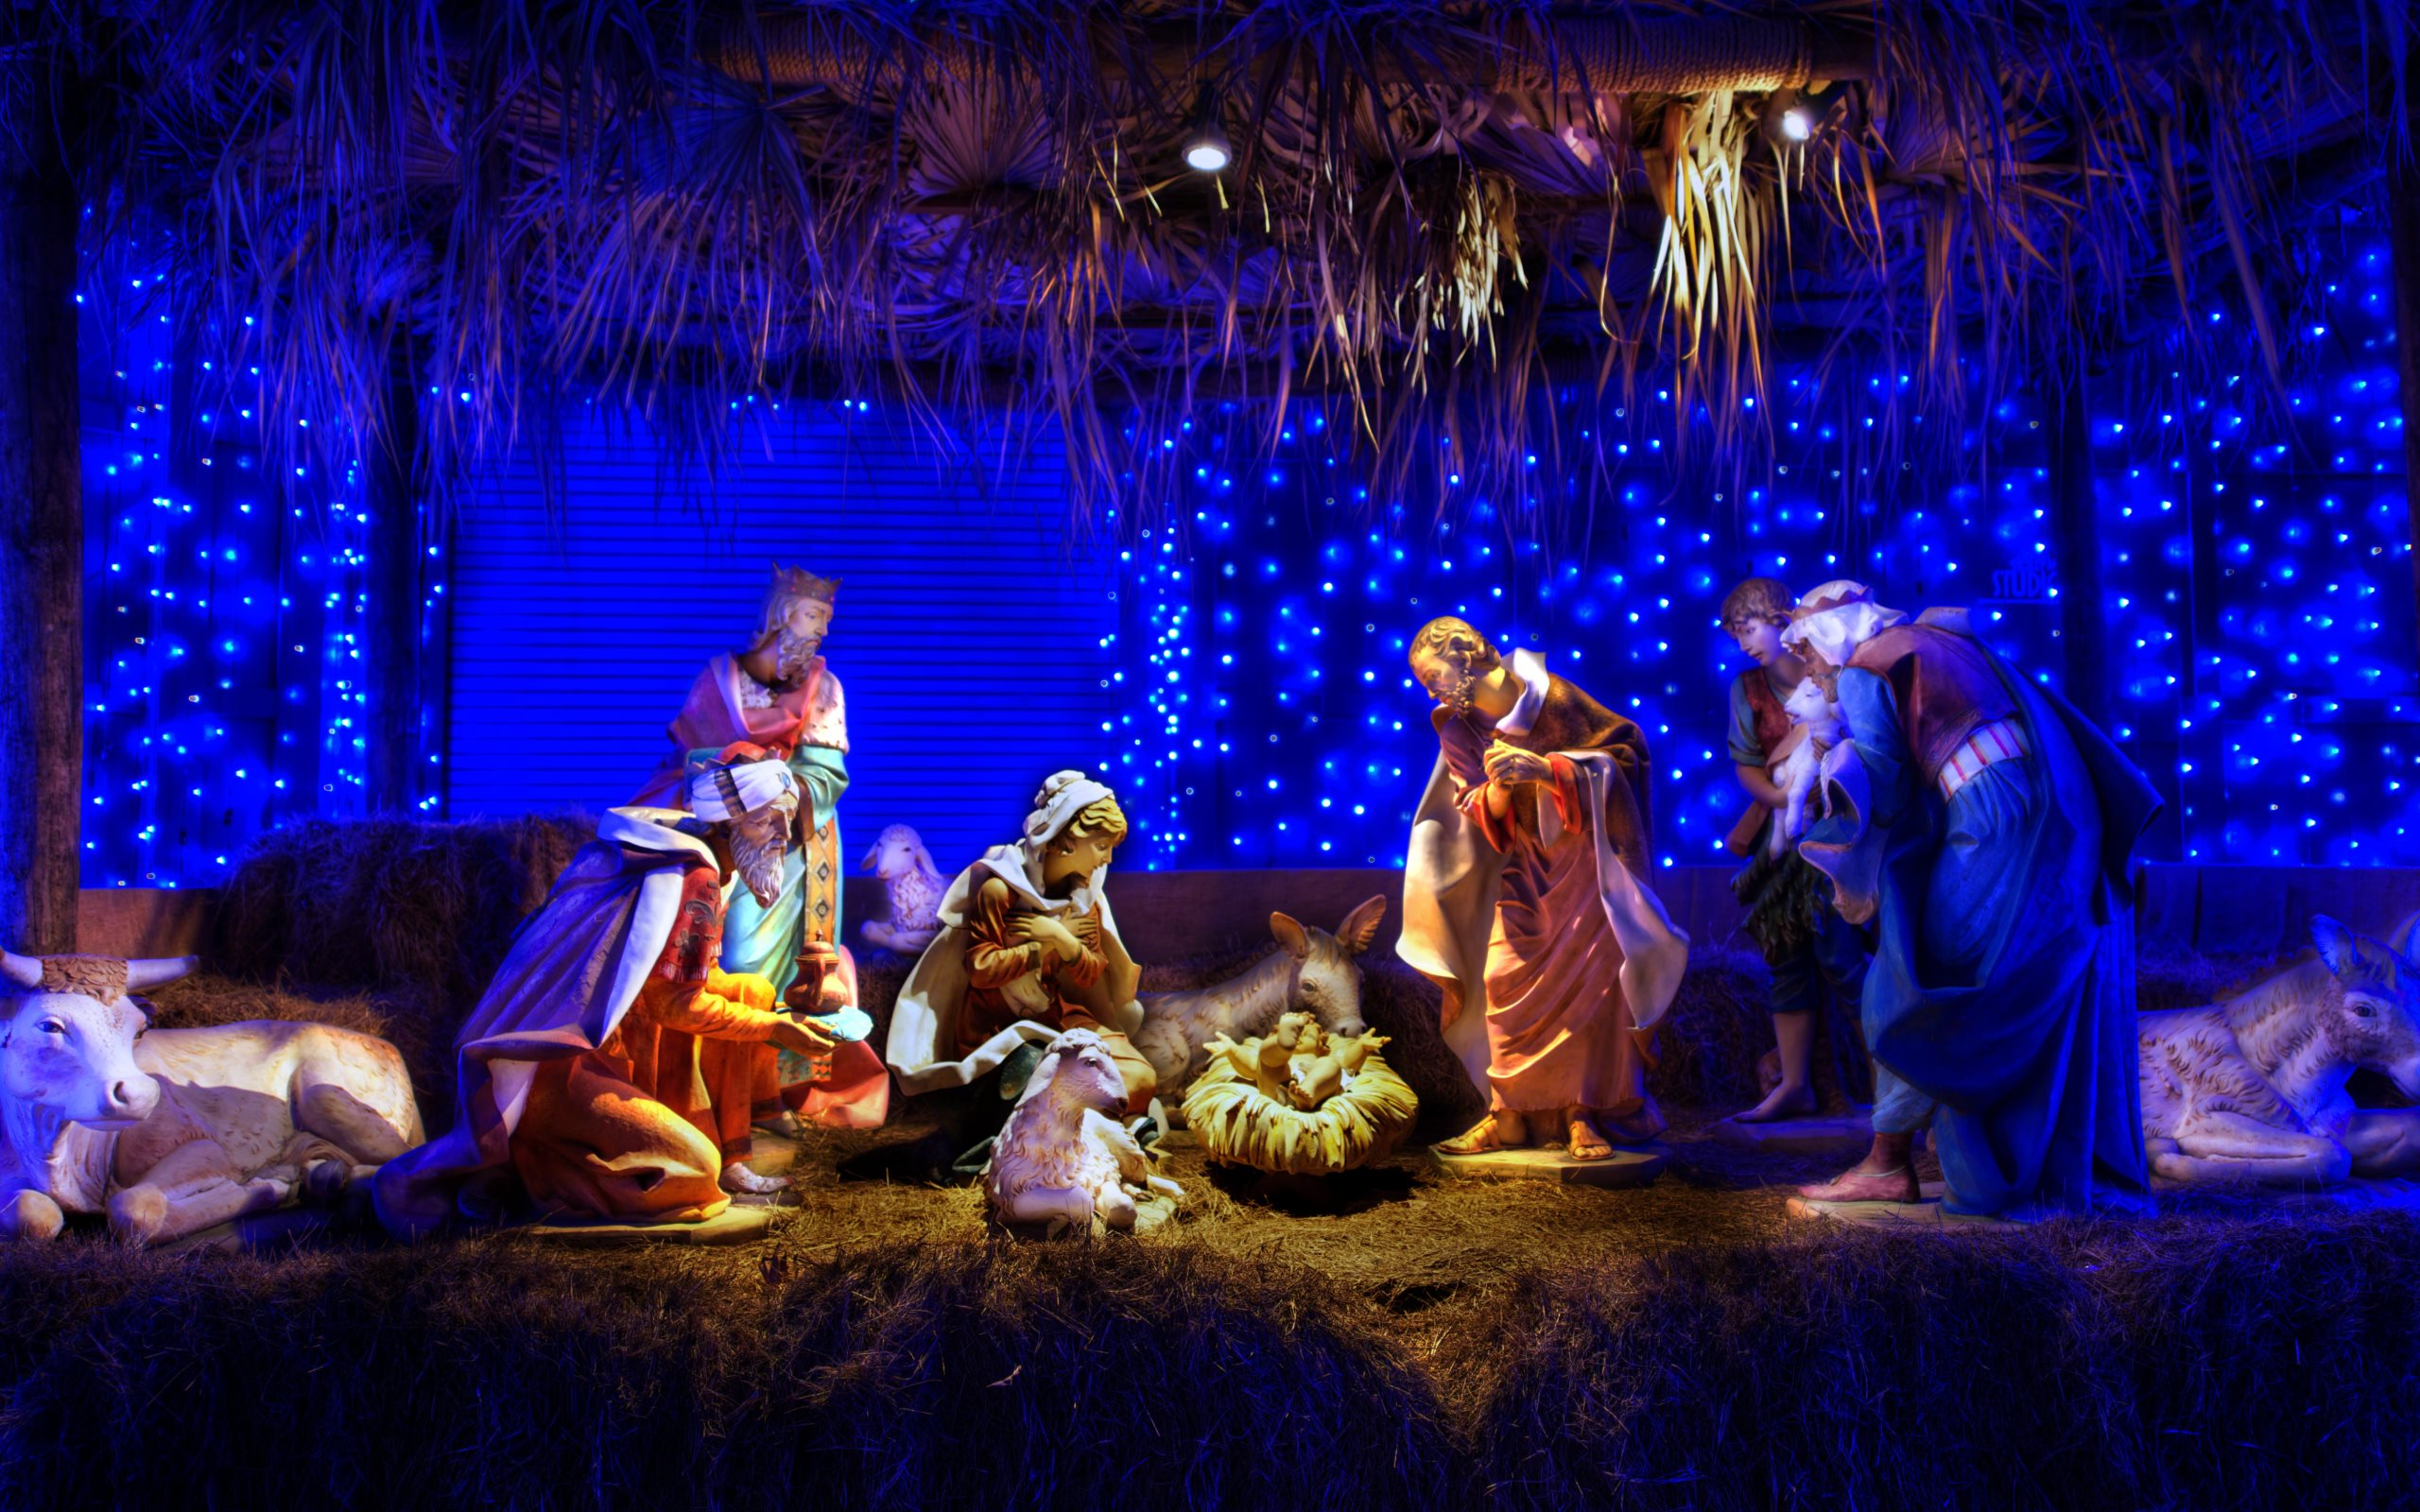 Christmas Nativity Scene Wallpapers | Free Computer Desktop Wallpapers